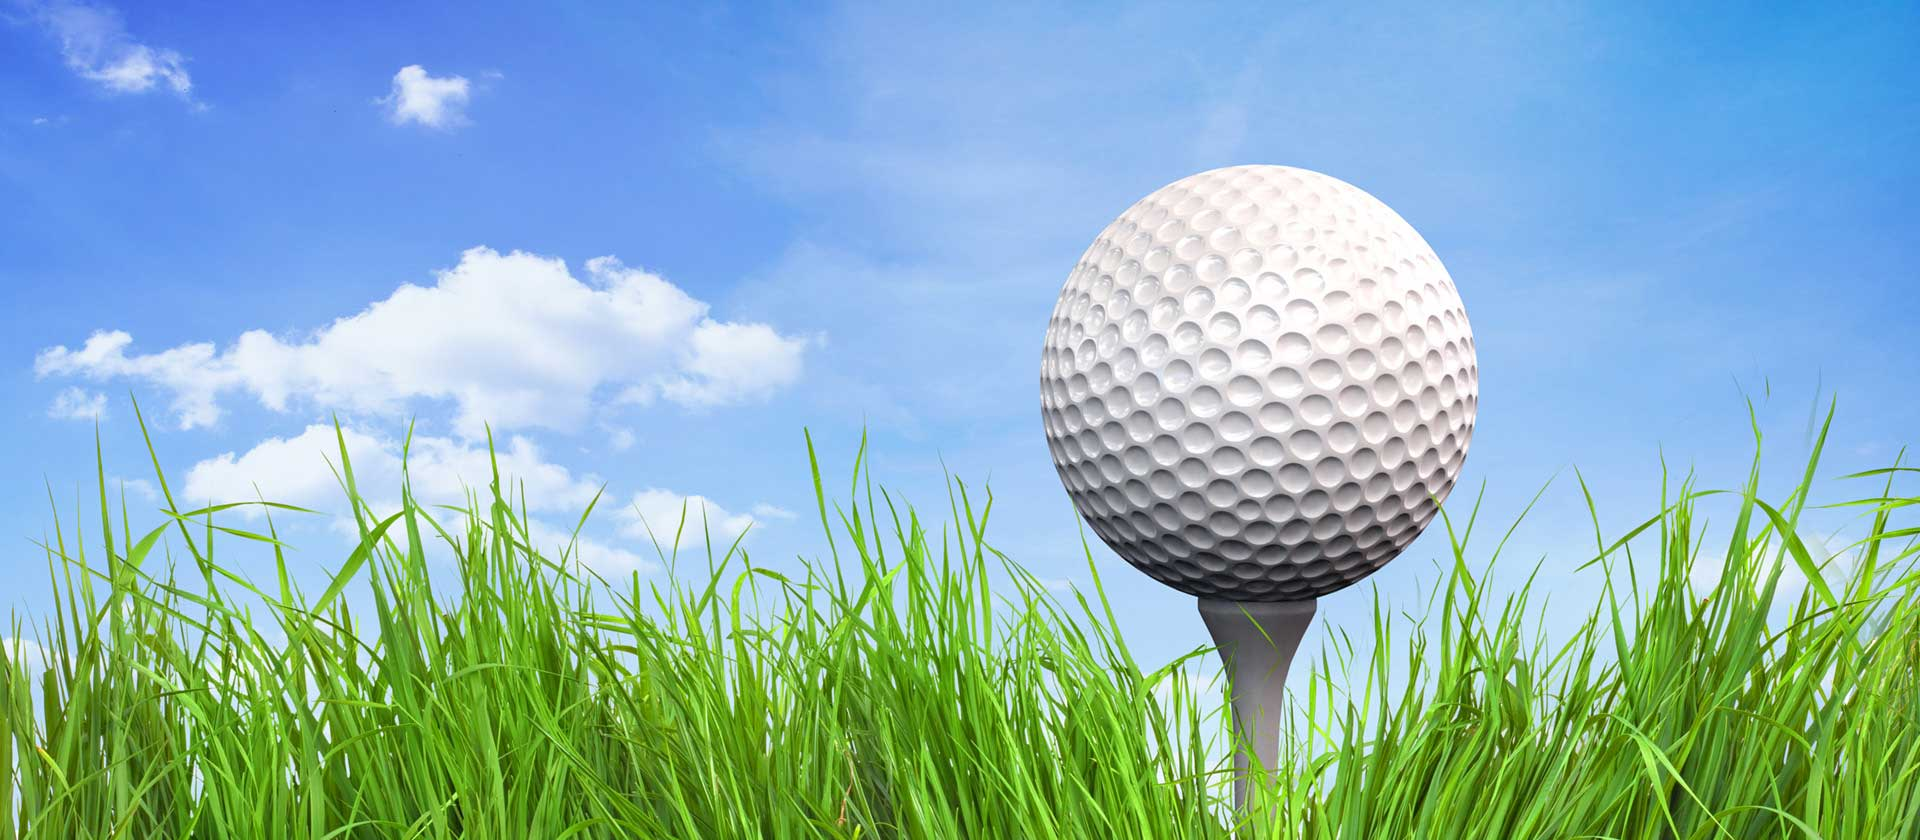 Golfing Holidays In North Wales - Welsh Holiday News Golf